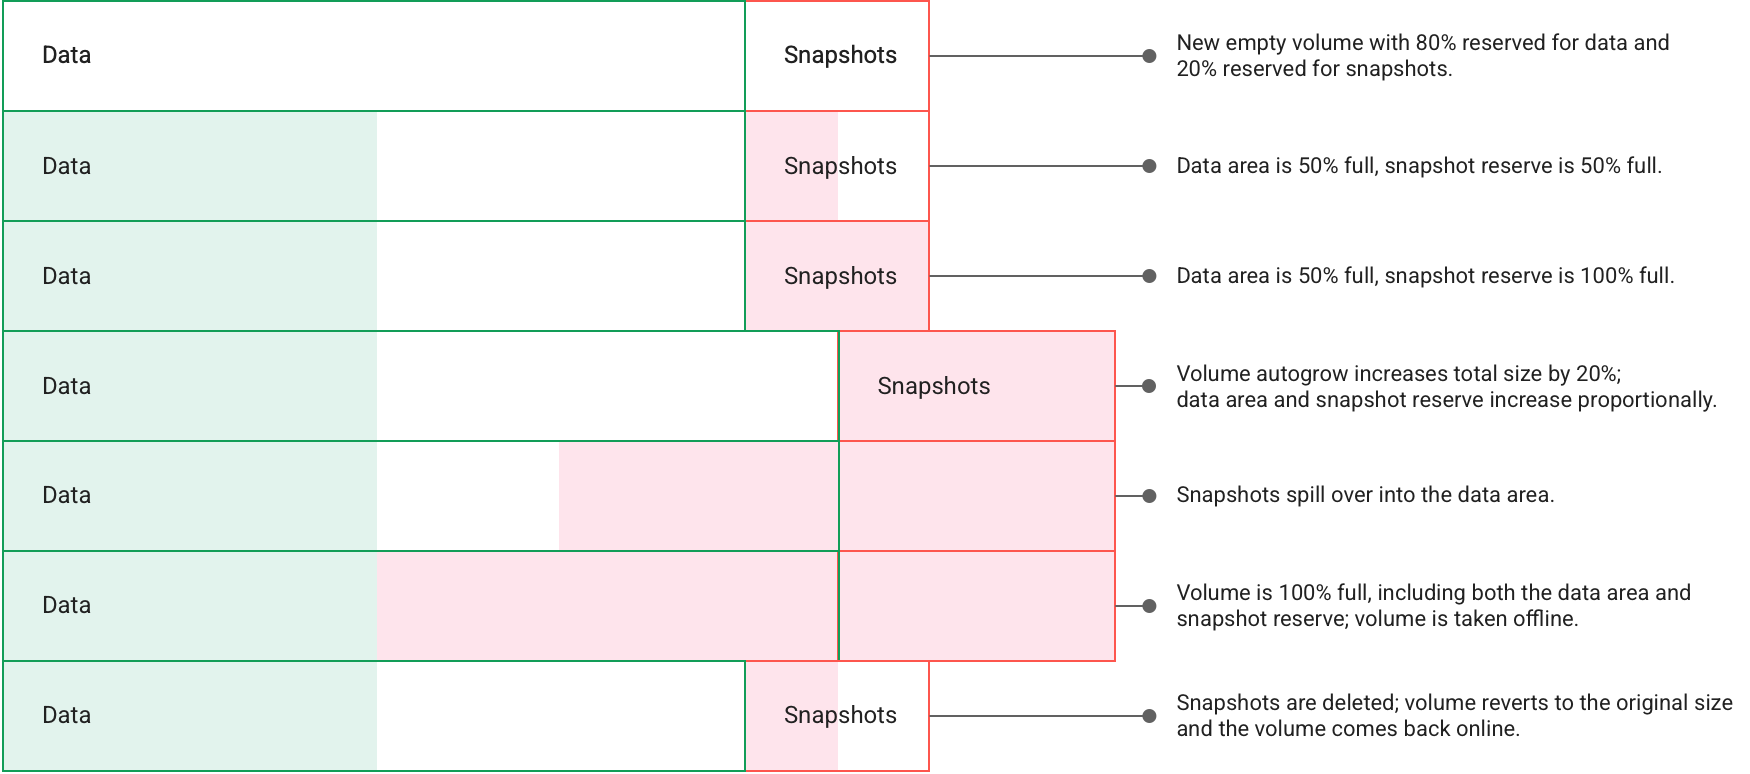 Visual representation of how snapshots fill up a storage volume and need to be deleted to allow new snapshots